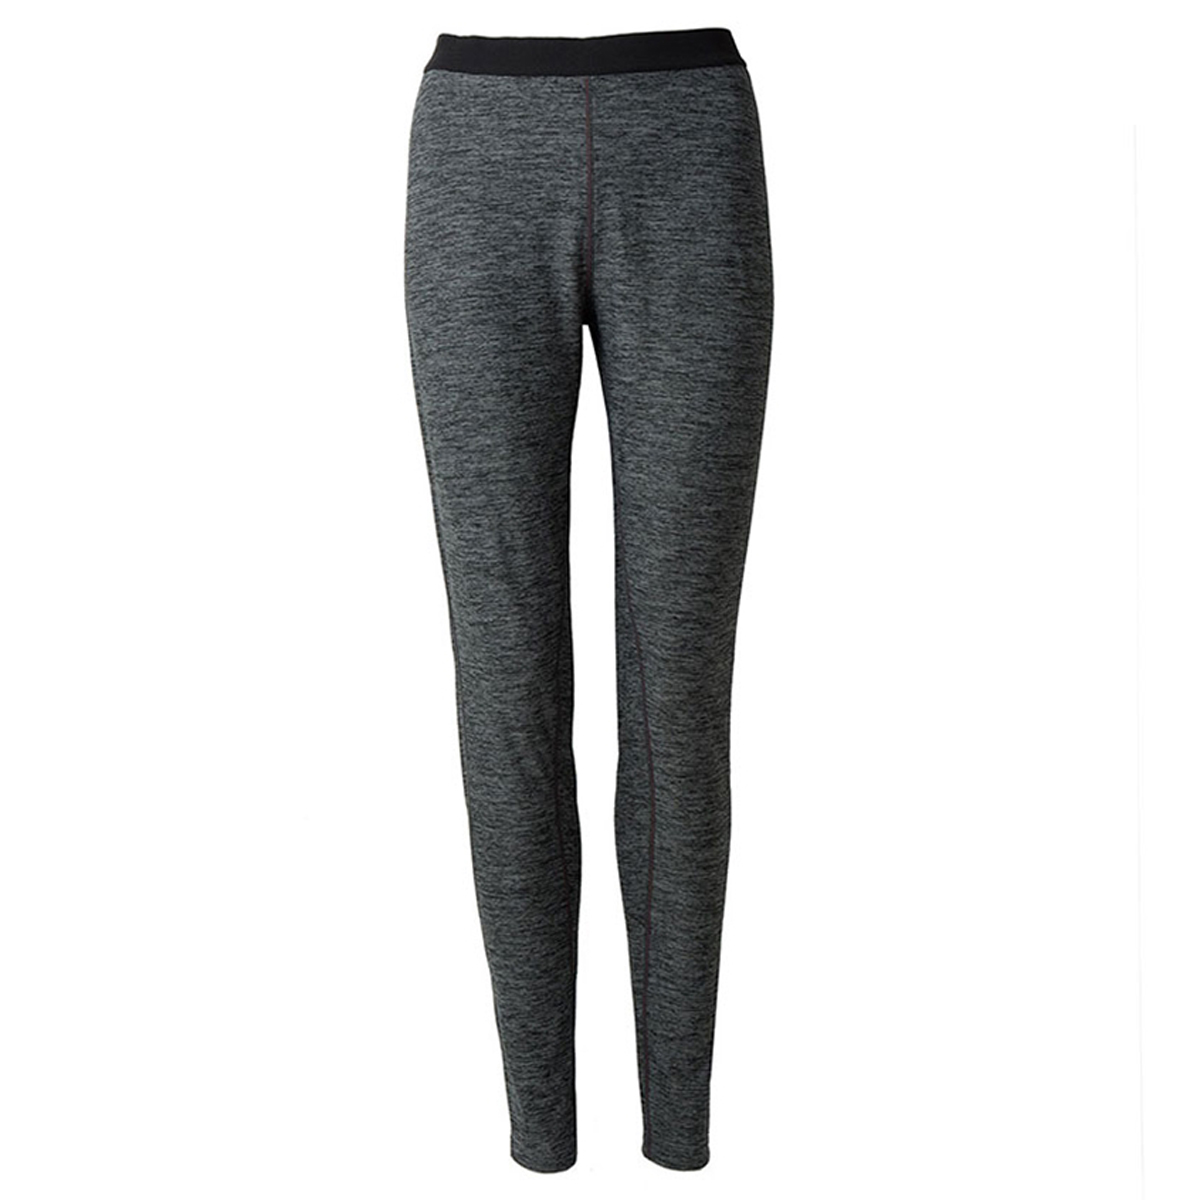 Gill Women's Base Layer Leggings (1283W)